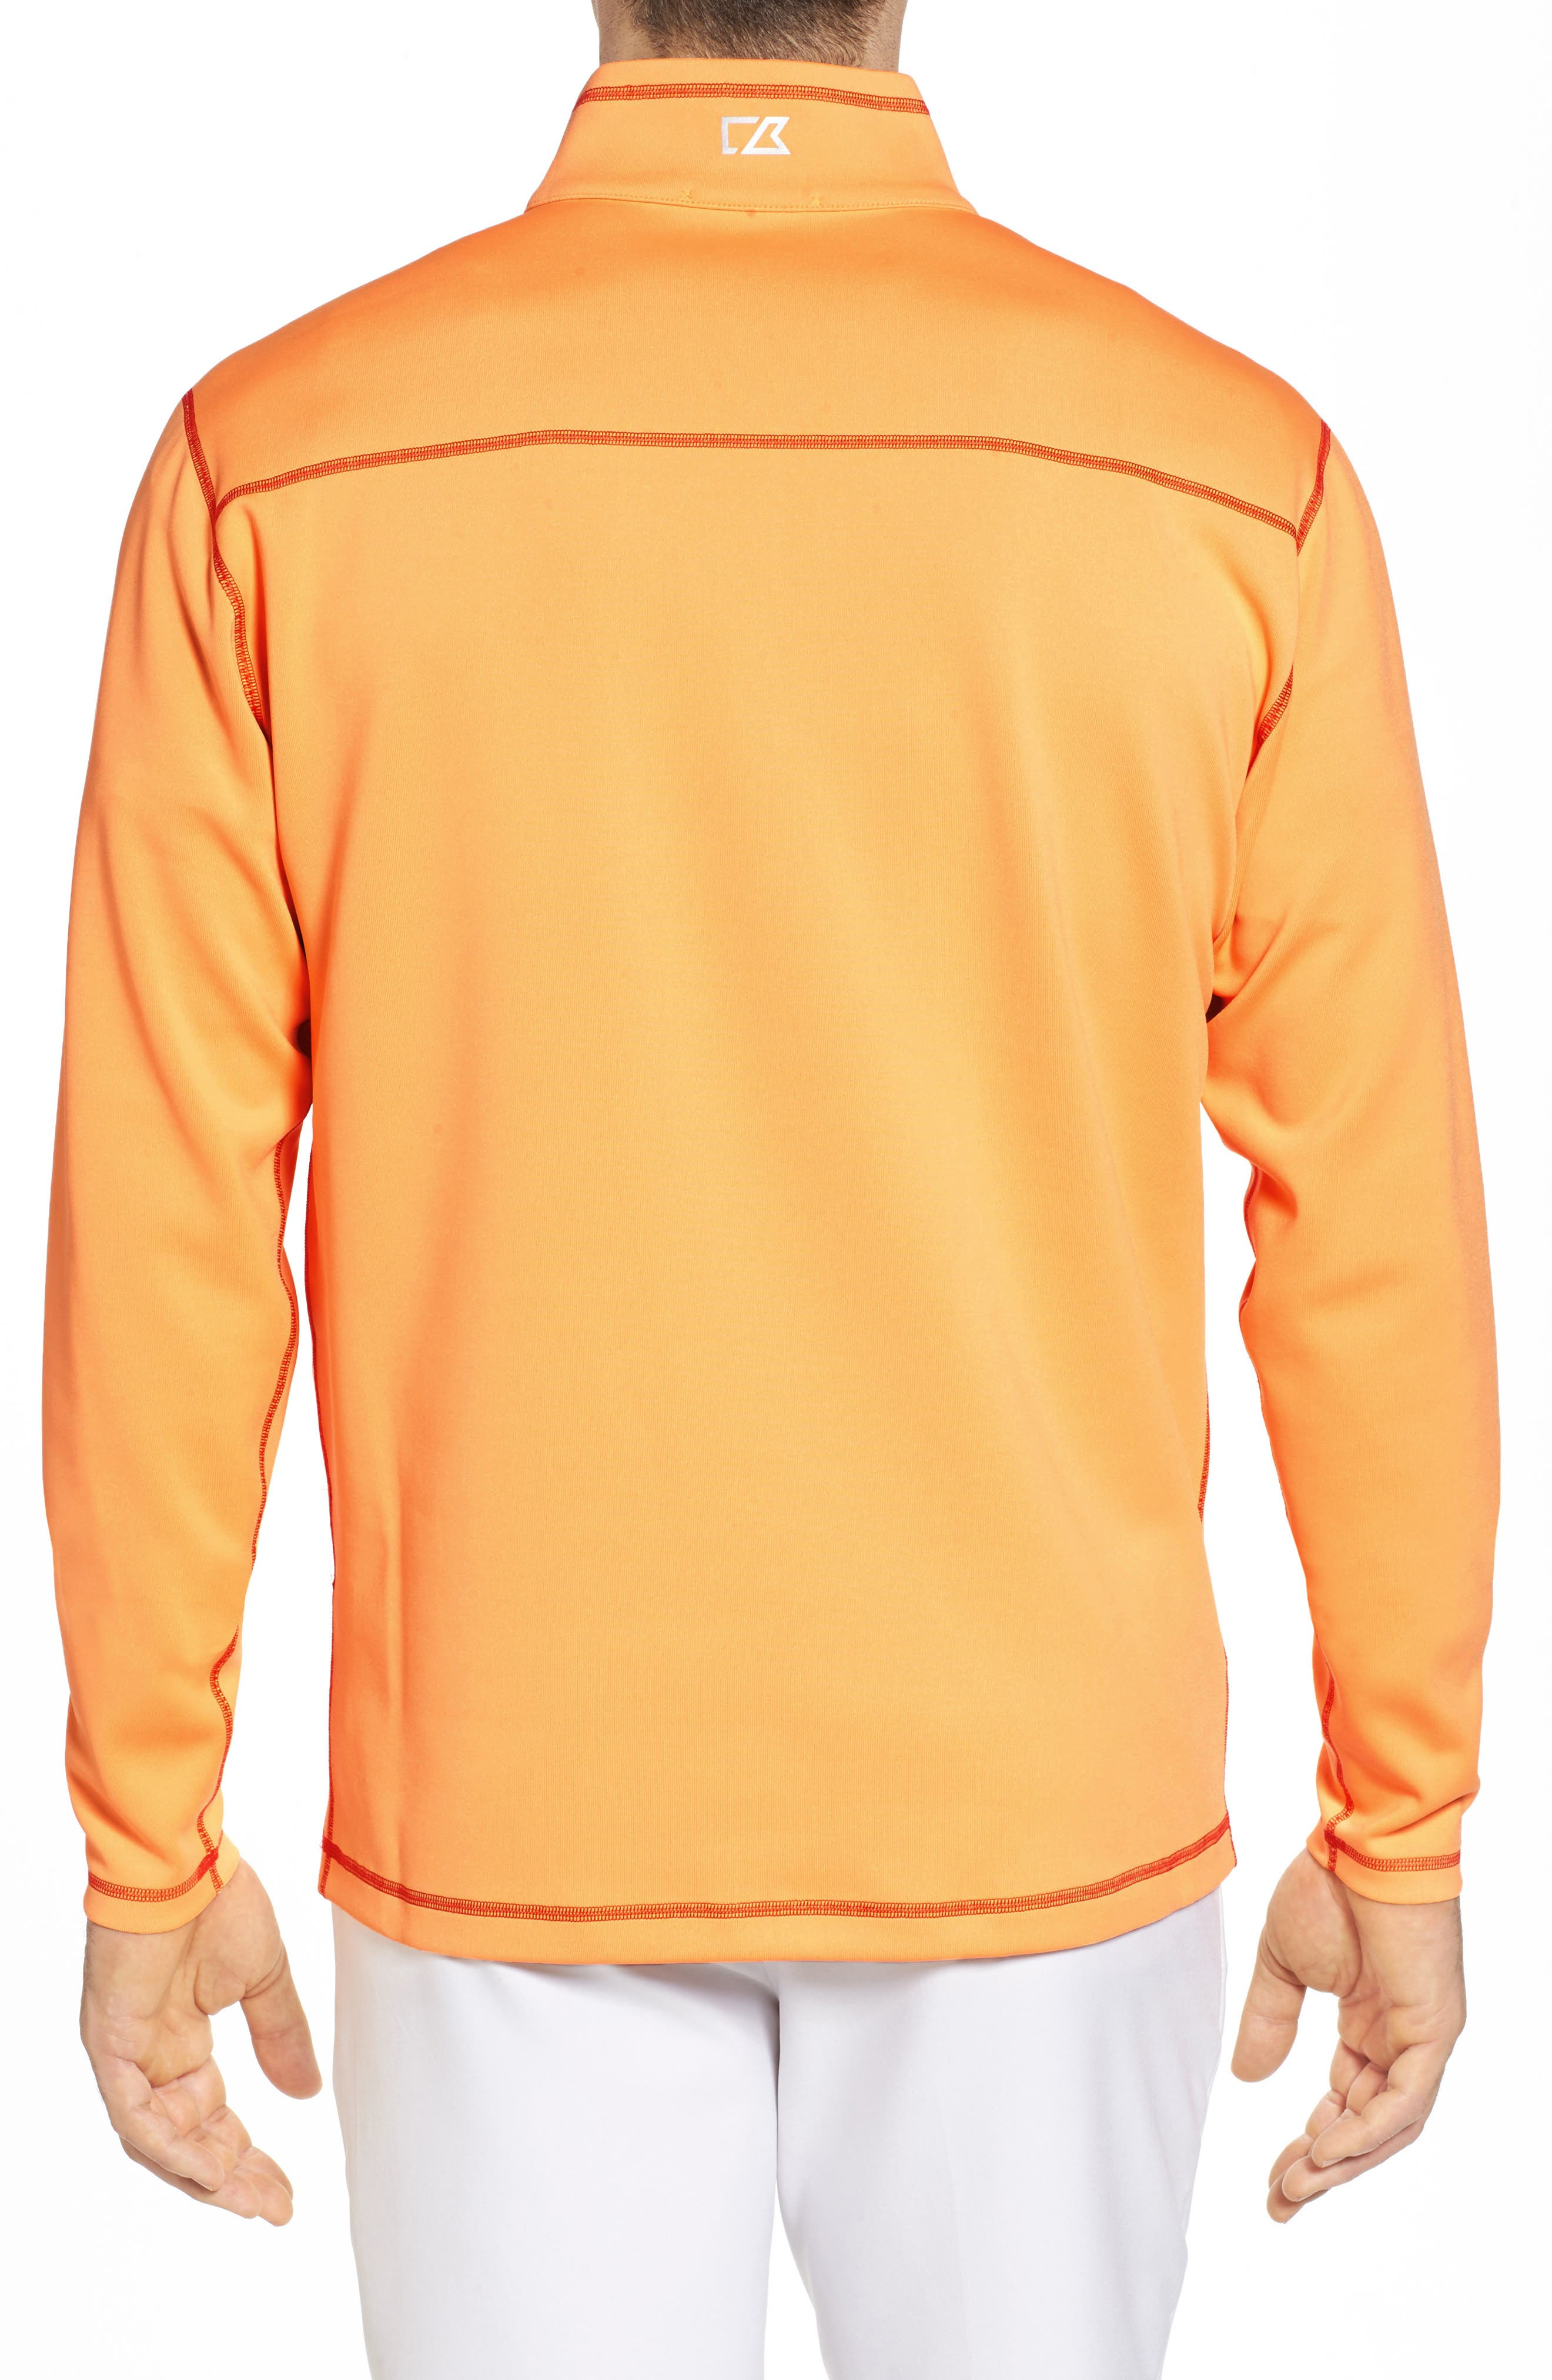 Evergreen Classic Fit DryTec Reversible Half Zip Pullover,                             Alternate thumbnail 2, color,                             Clarity